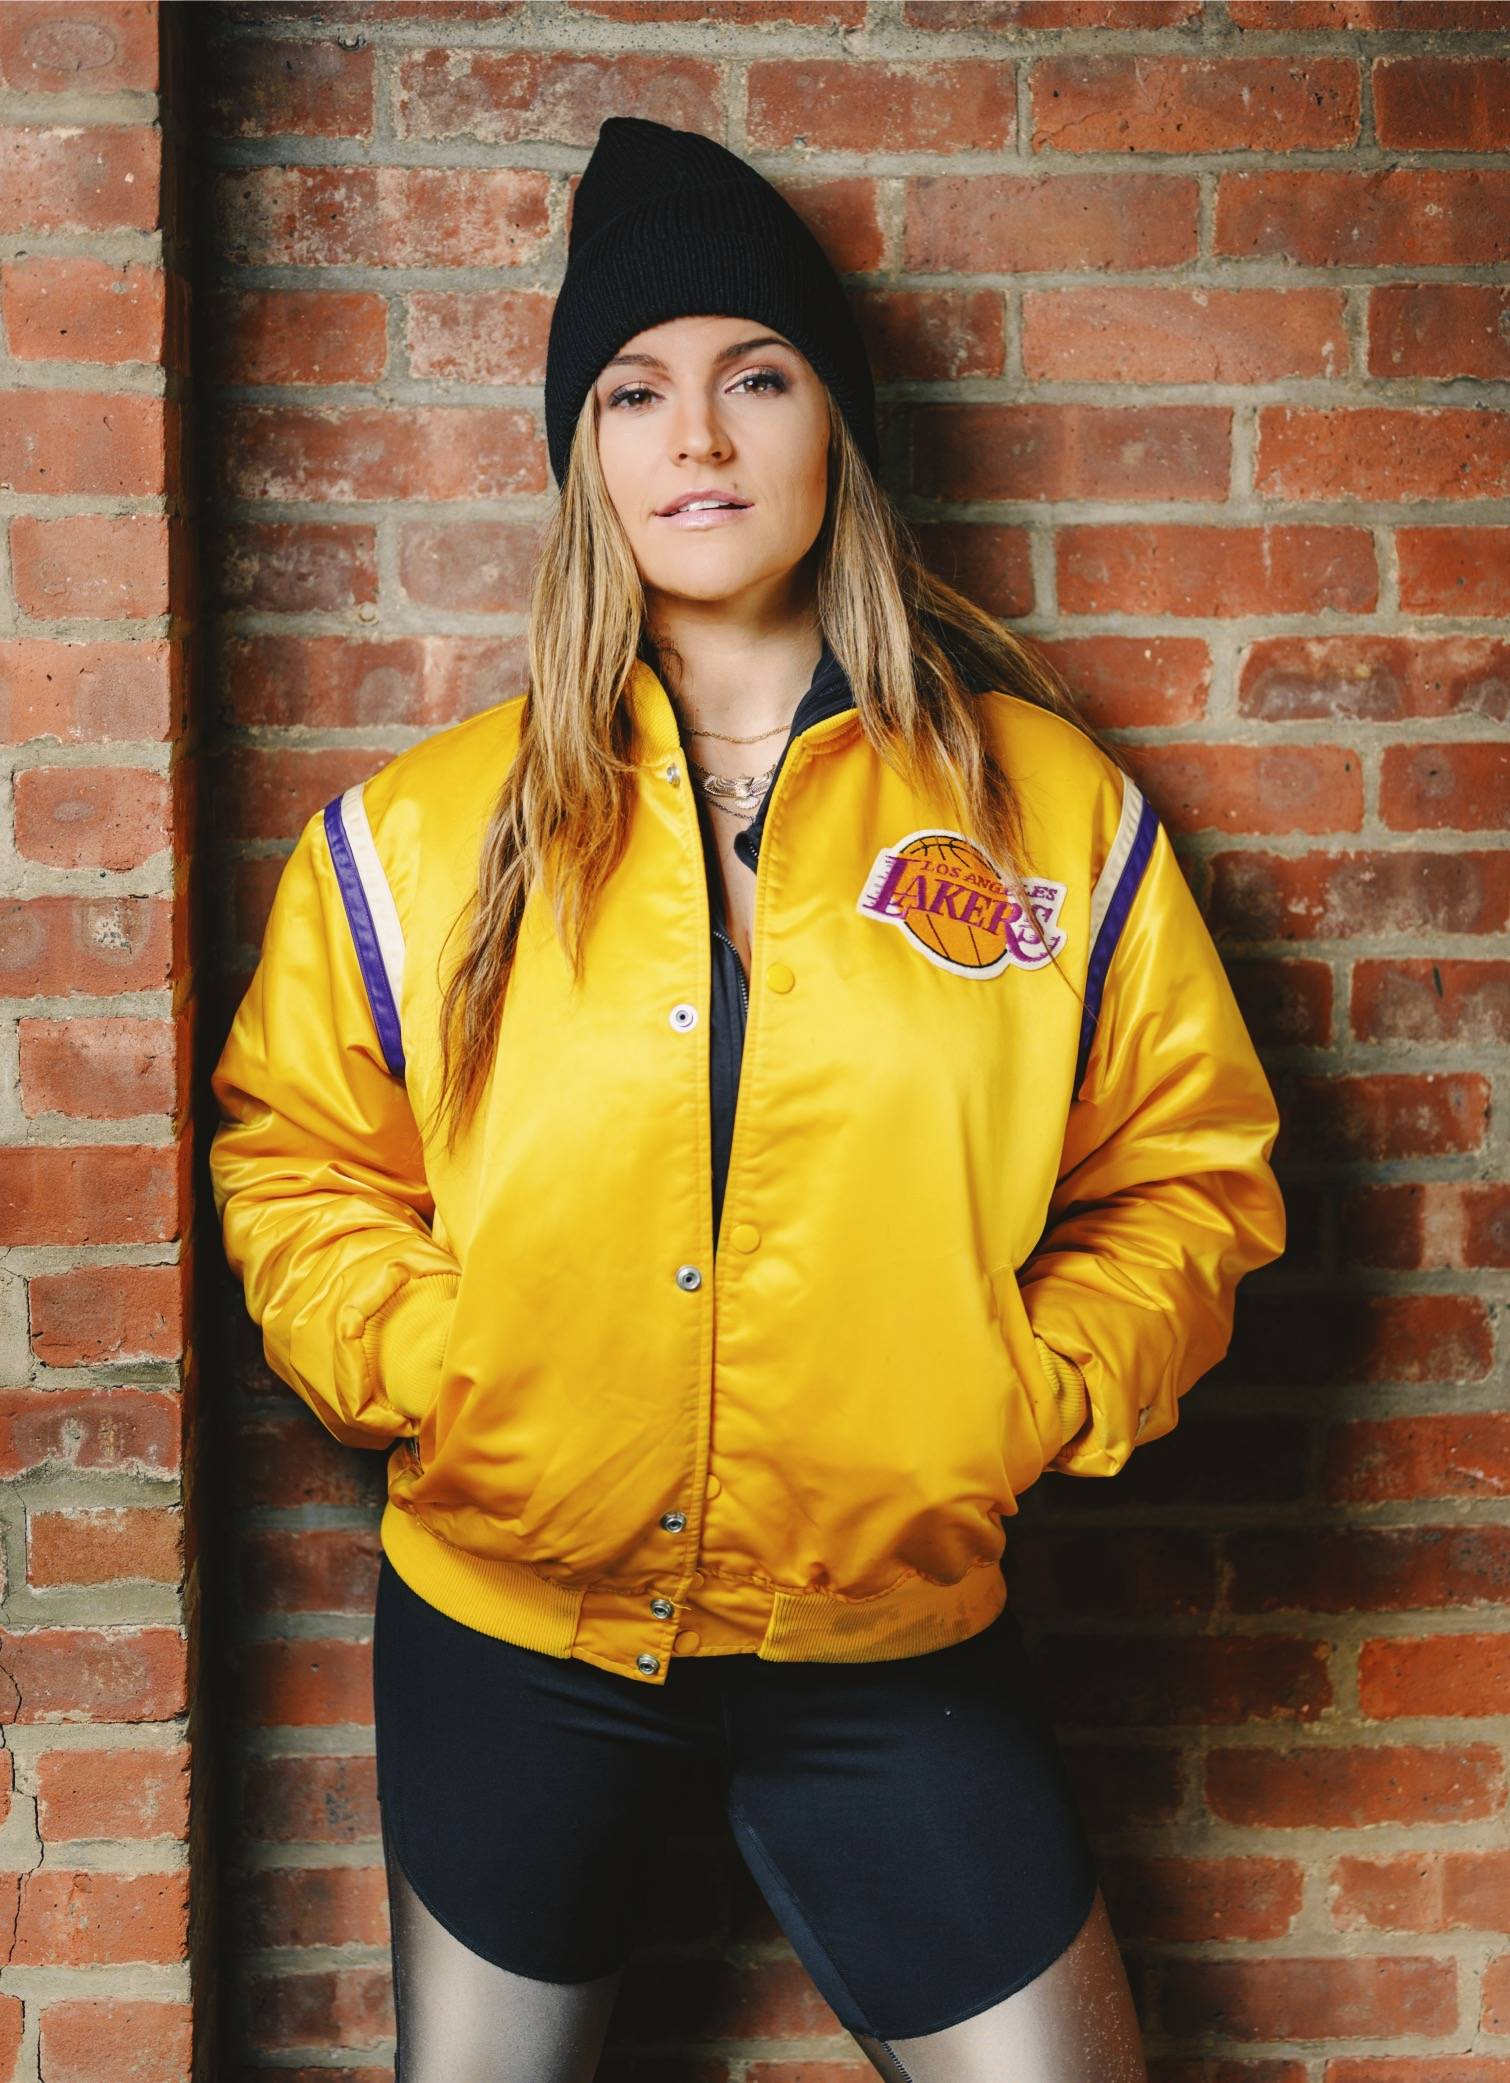 Photo of Annie O'Donnell, wearing an LA Lakers jacket, standing against a brick wall